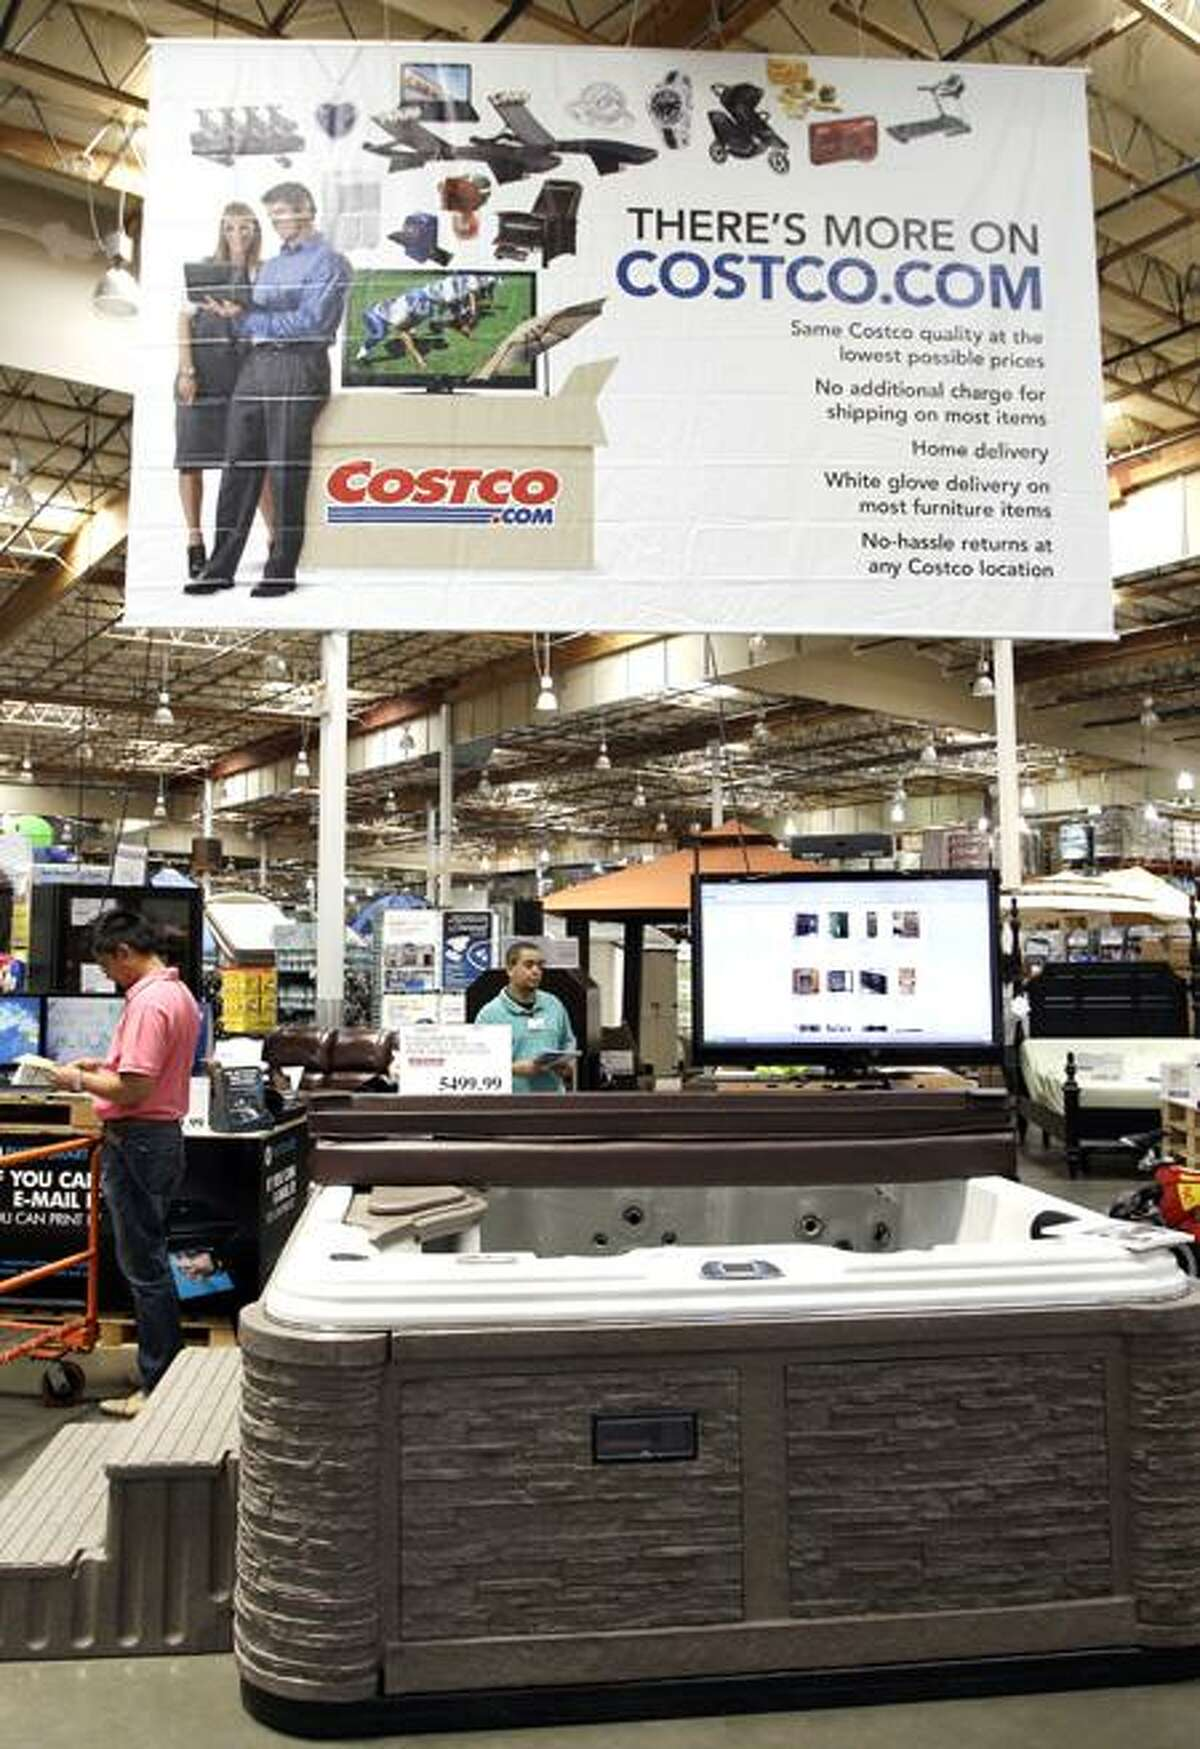 A hot tub is on display in front of an advertising for online service Costco.com at Costco in Mountain View, Calif. (Associated Press)